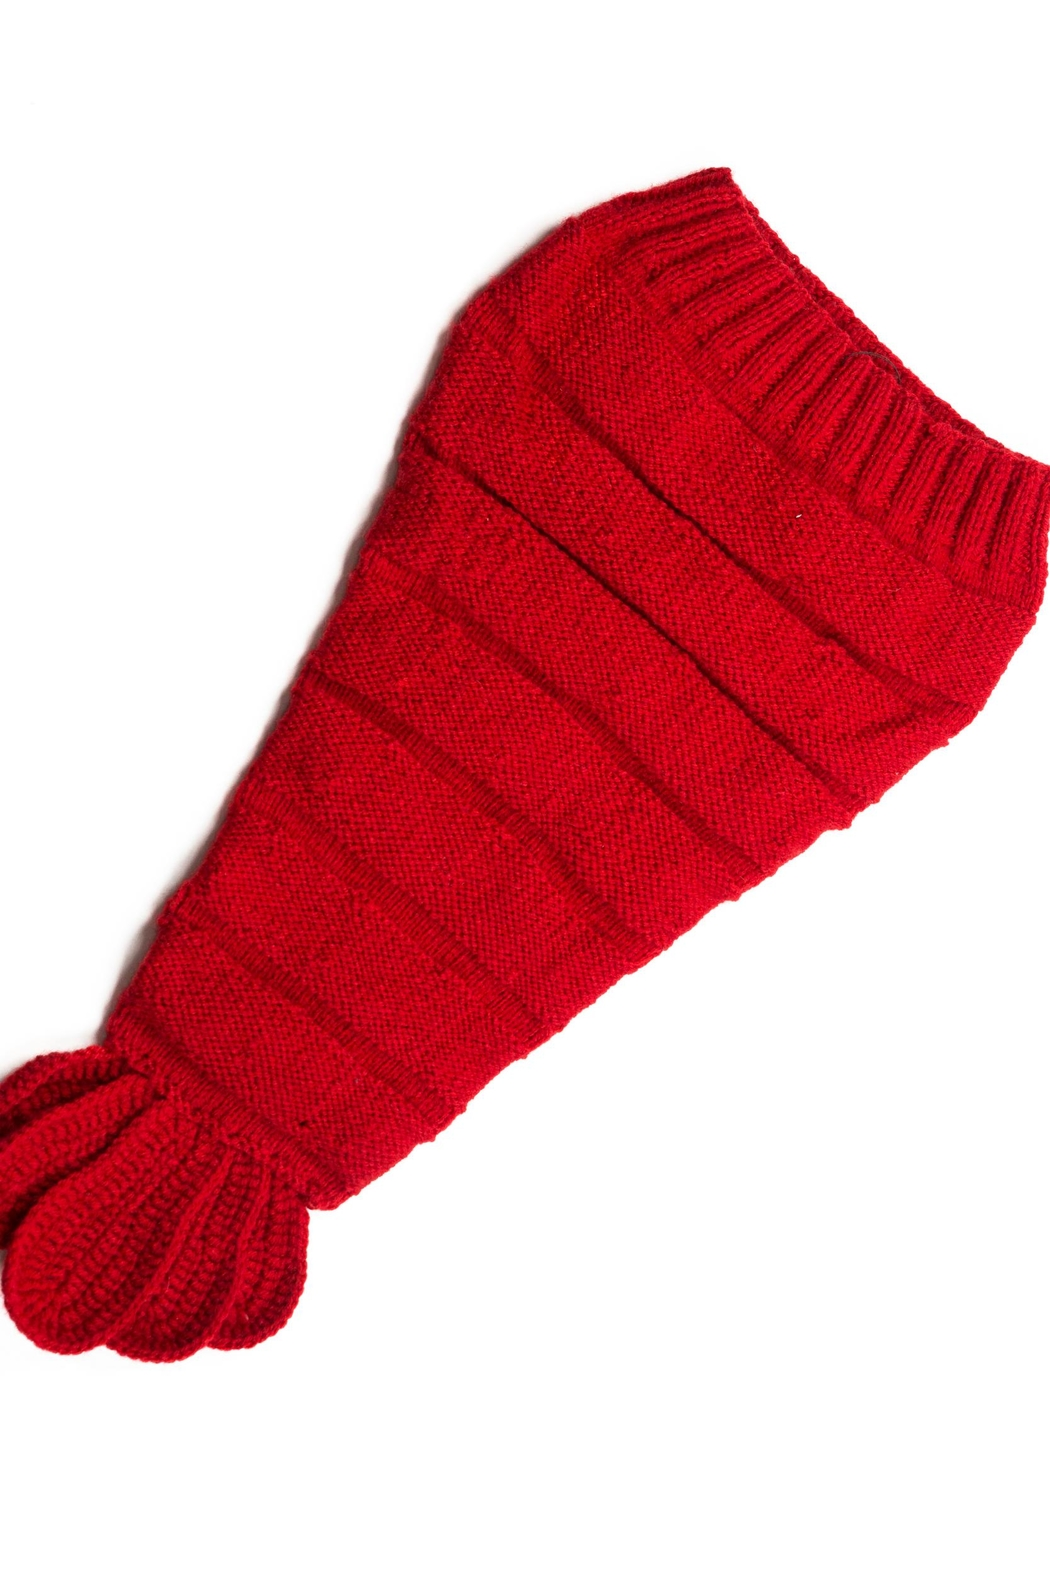 LizzyLoo Designs Infant Lobster Cocoon - Main Image